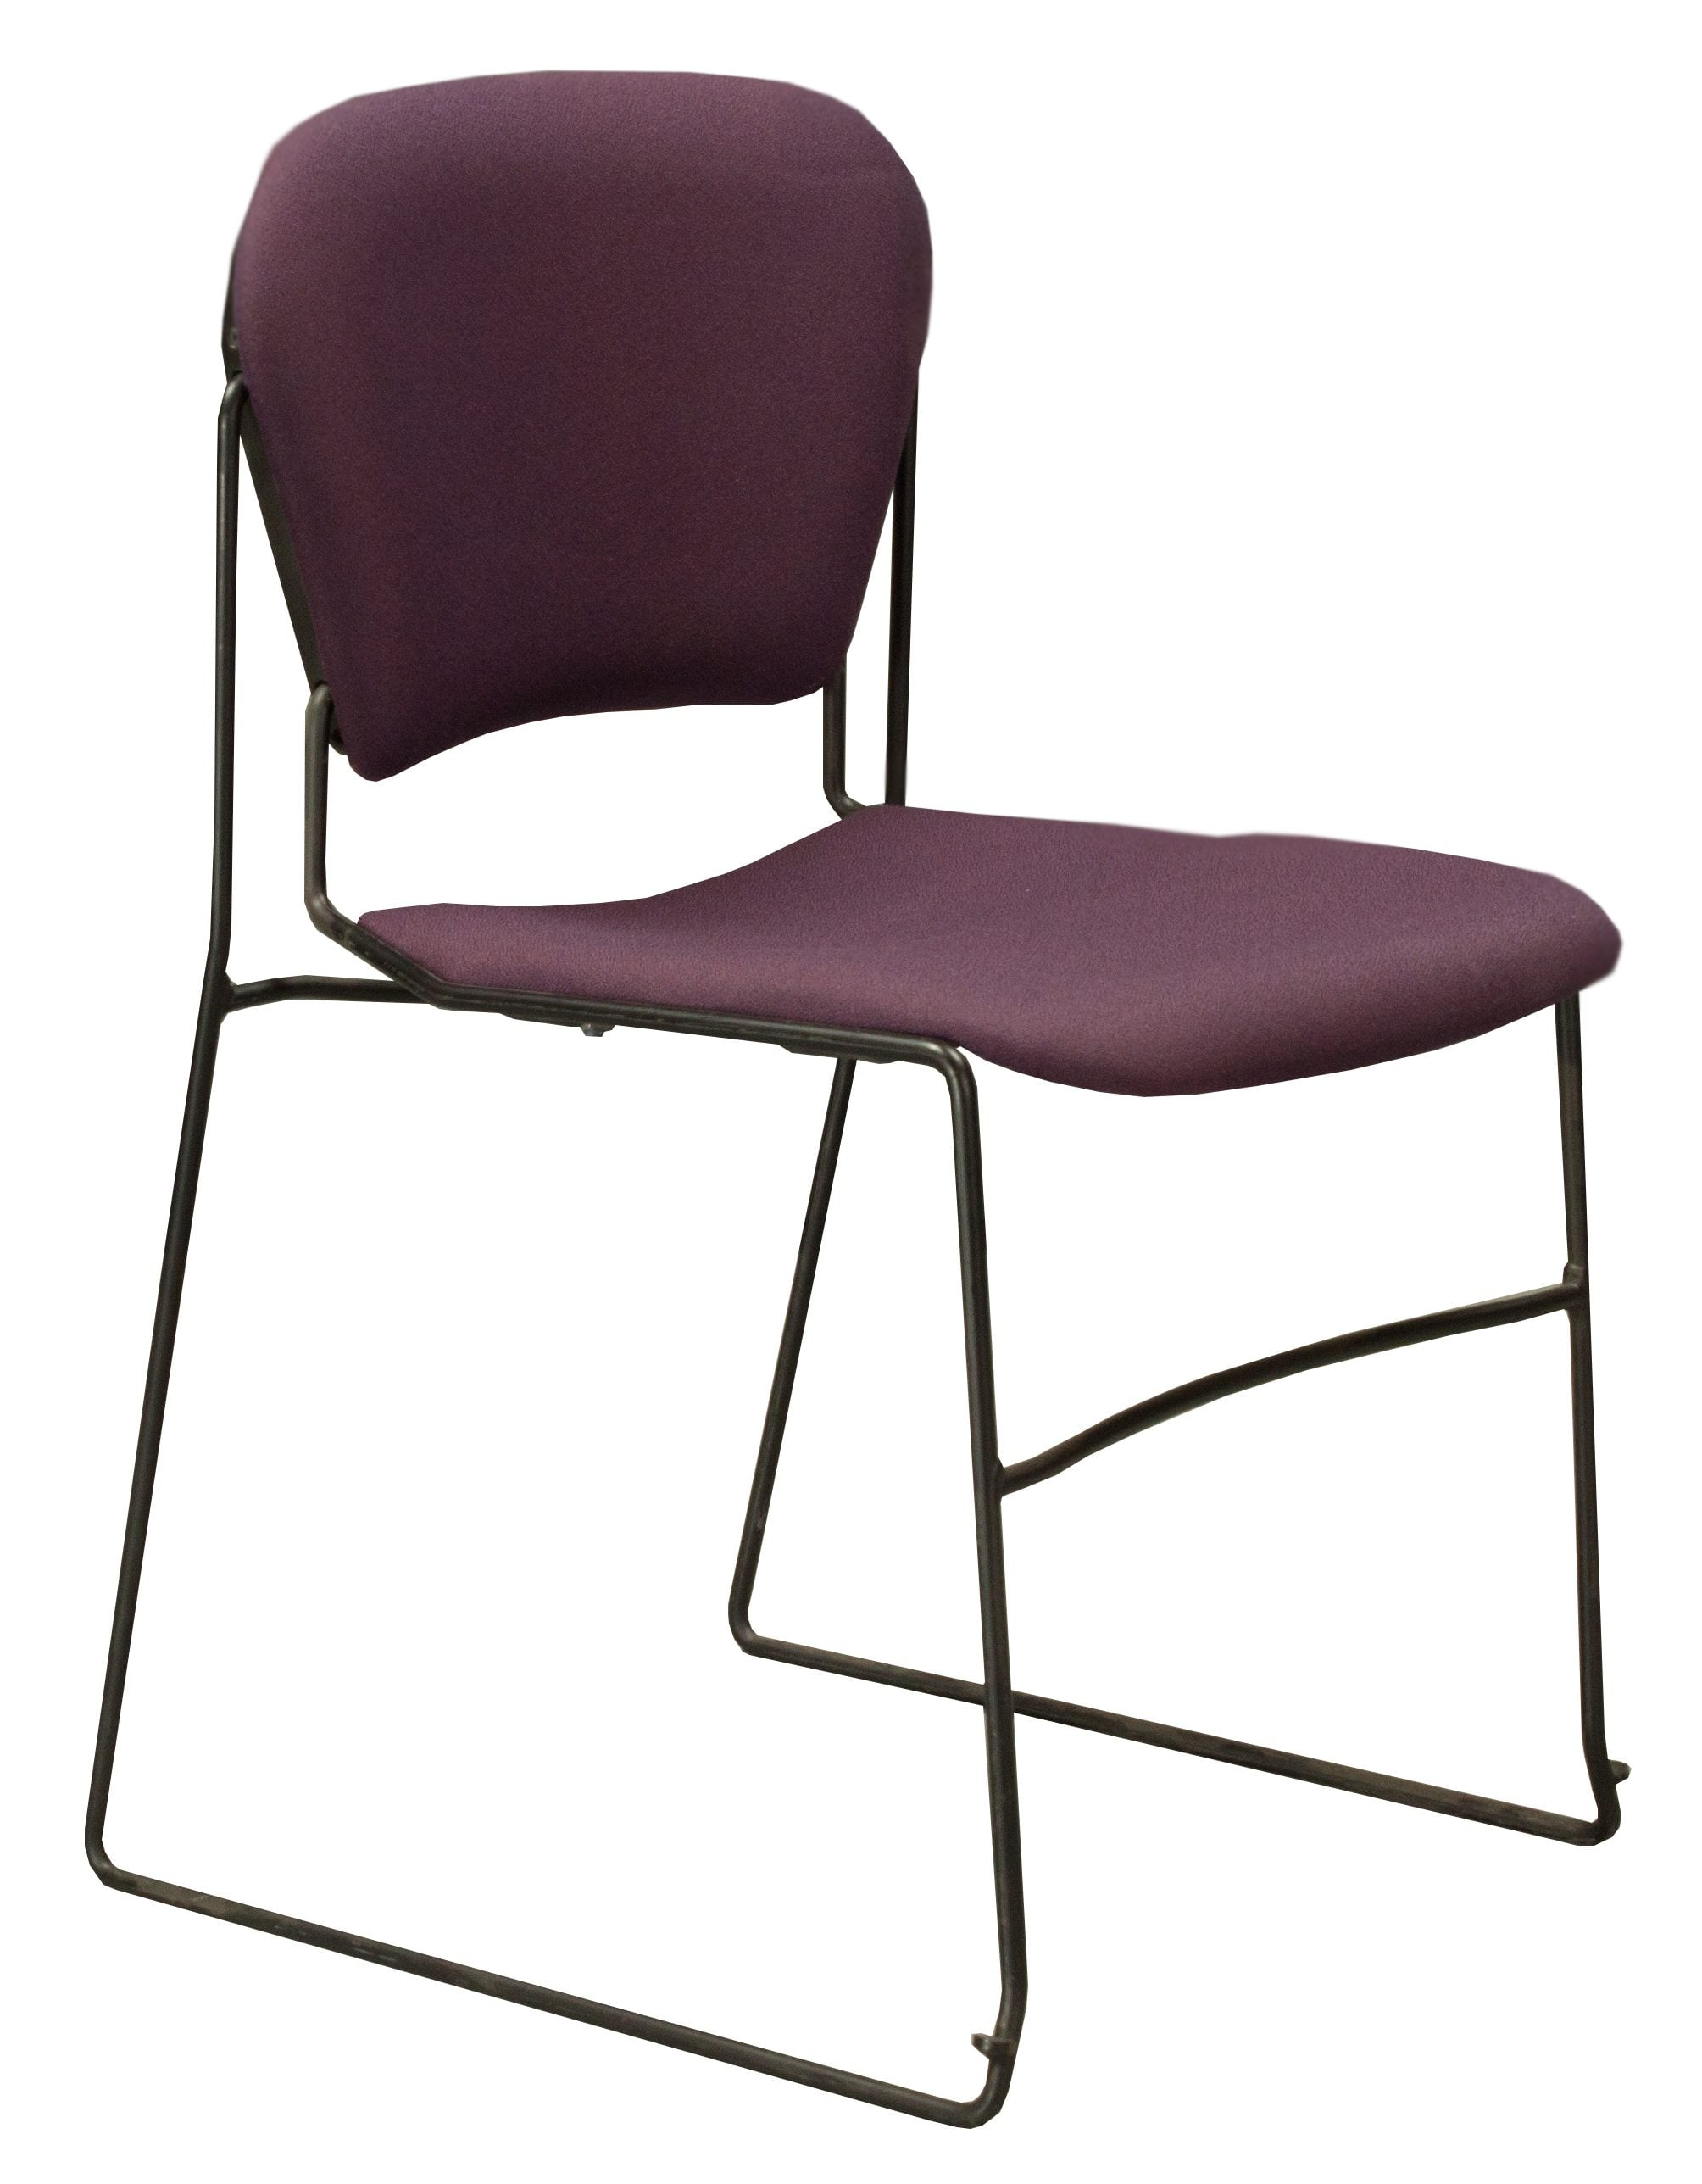 Ki Chairs Ki Perry Used Reupholstered Stack Chair Plum National